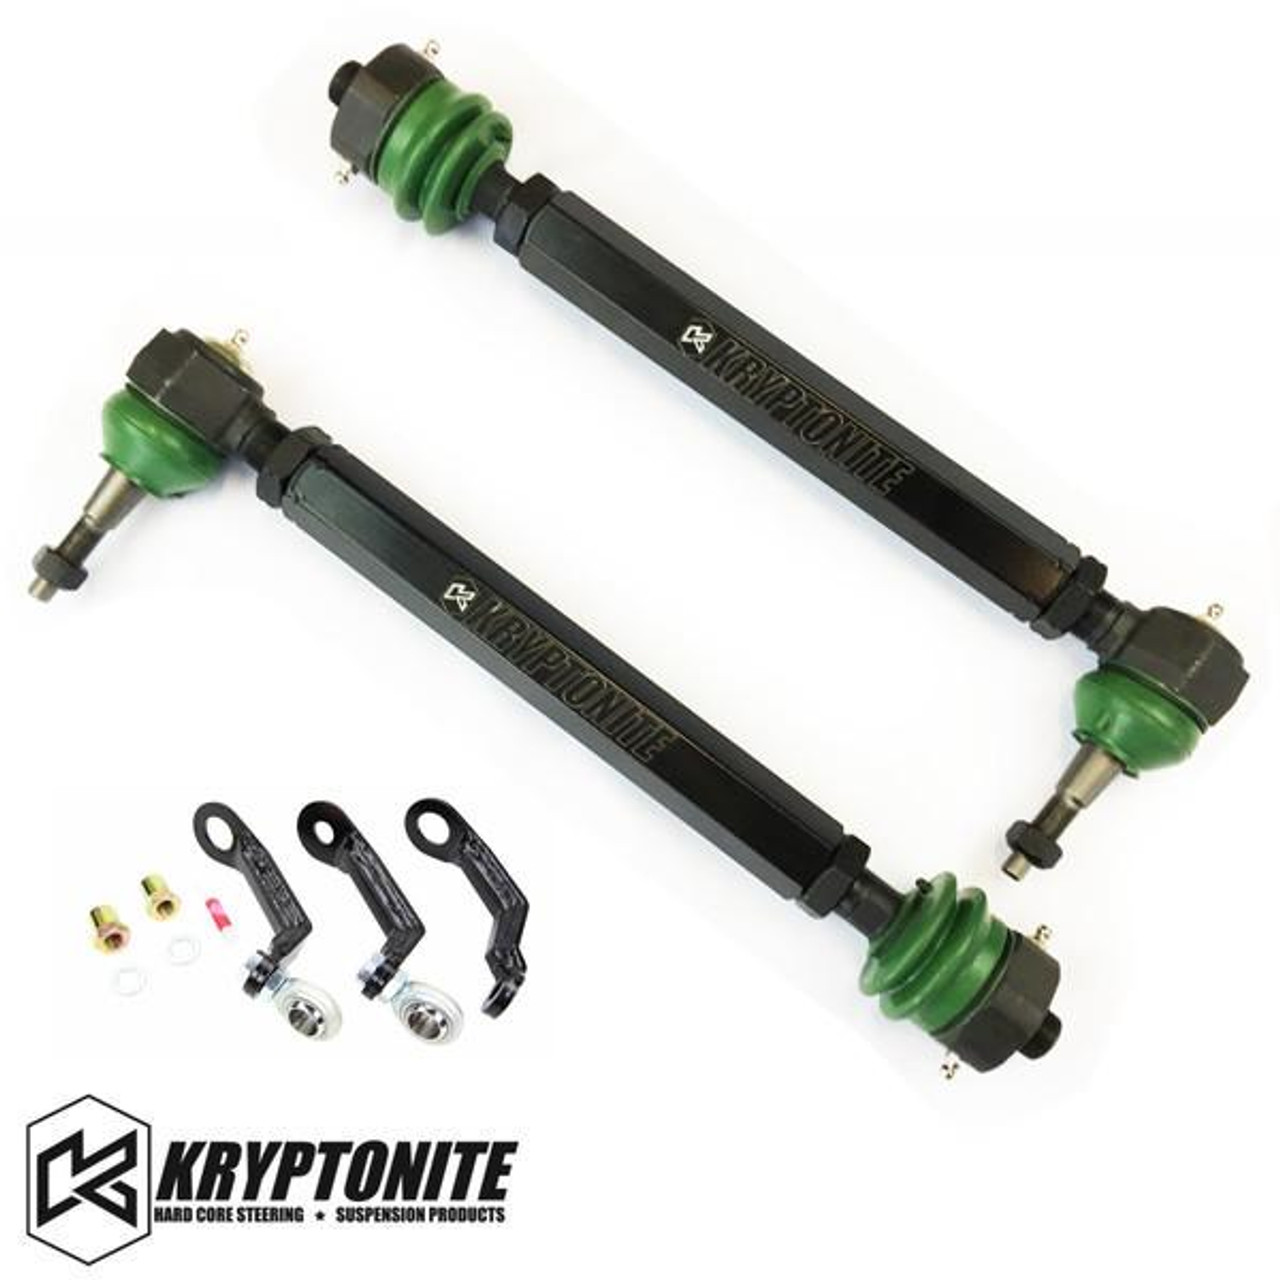 KRYPTONITE DEATH GRIP TIE RODS W/ PISK KIT 2011+